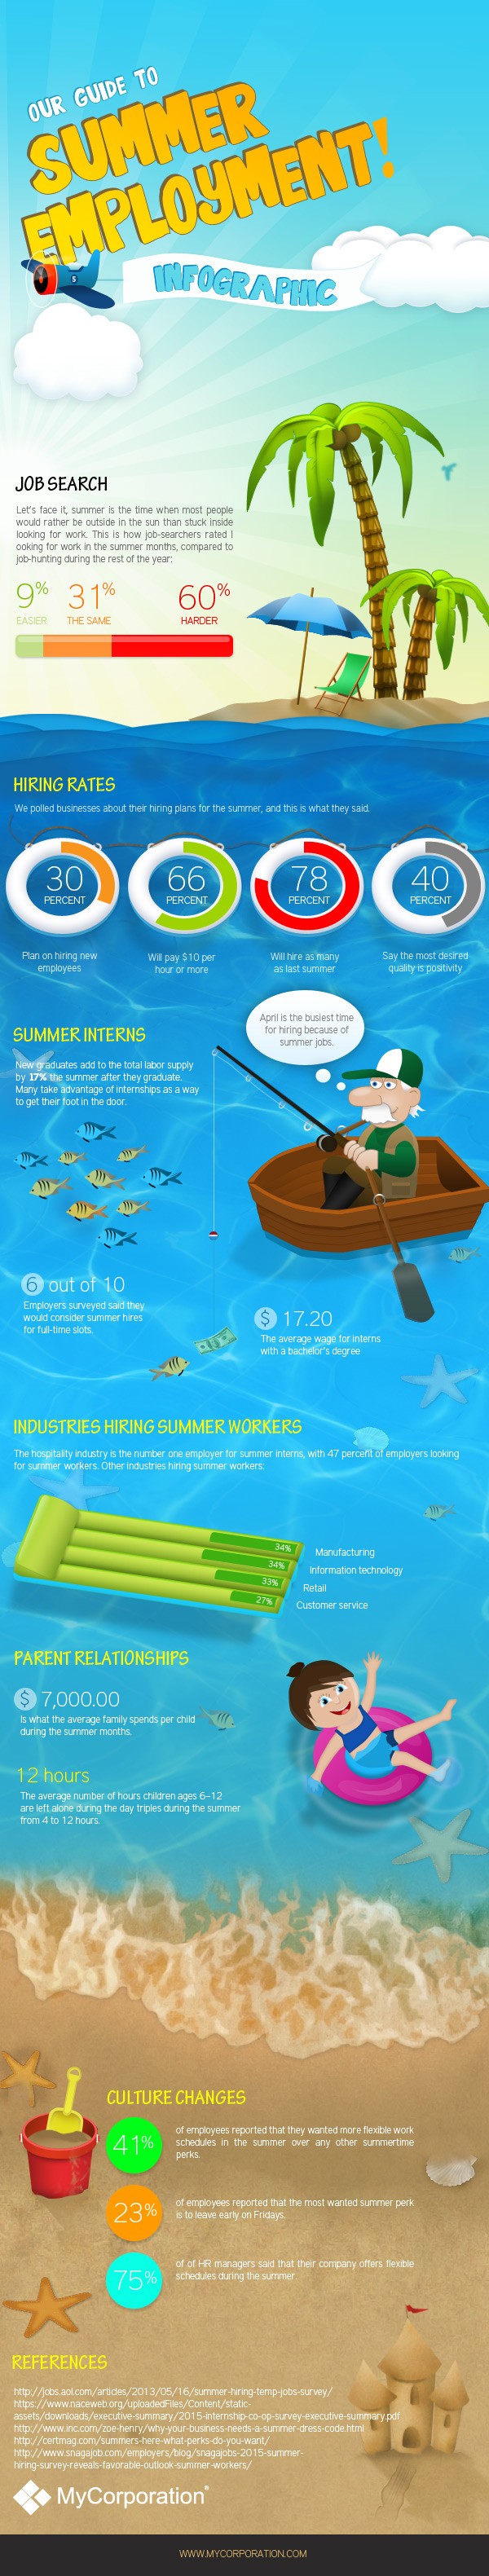 Summer_Business_Infographic